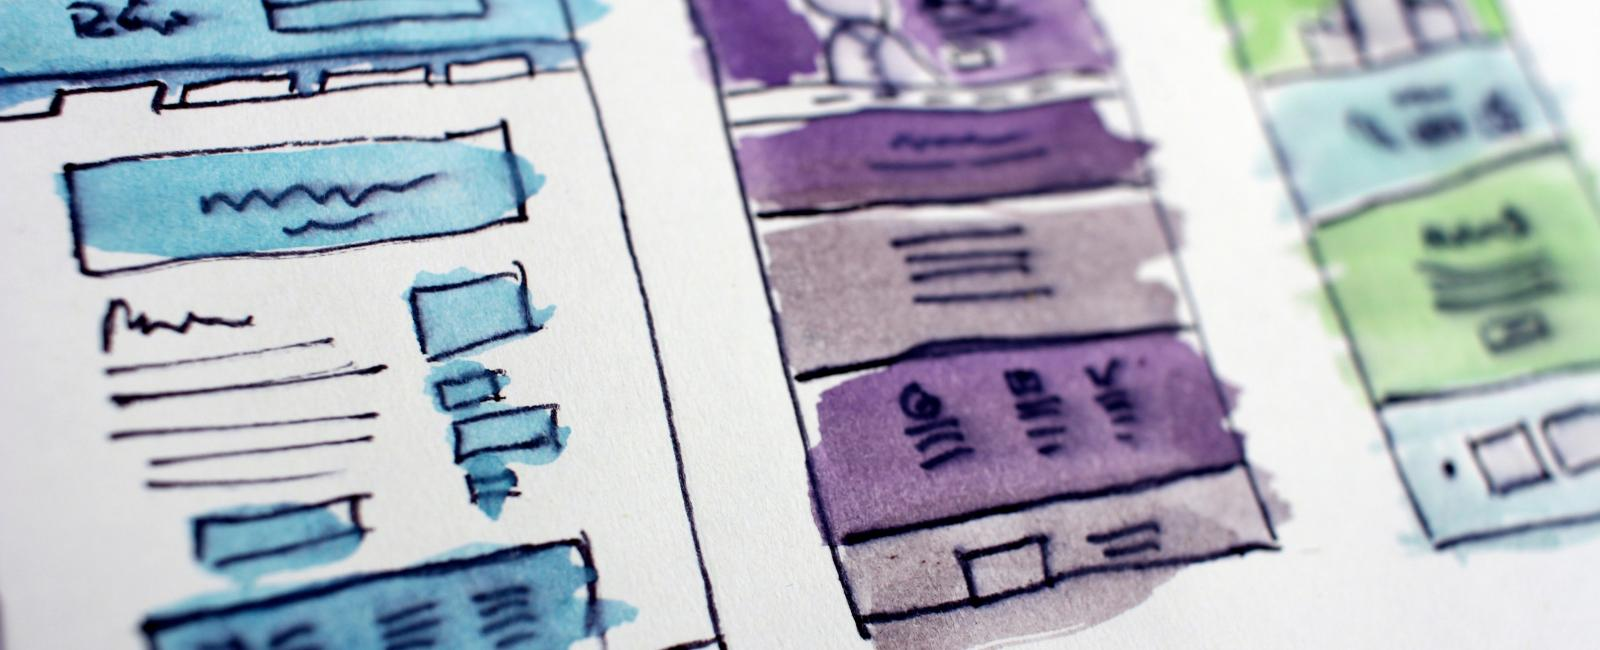 Watercolor website wireframes in blue, purple, and green.